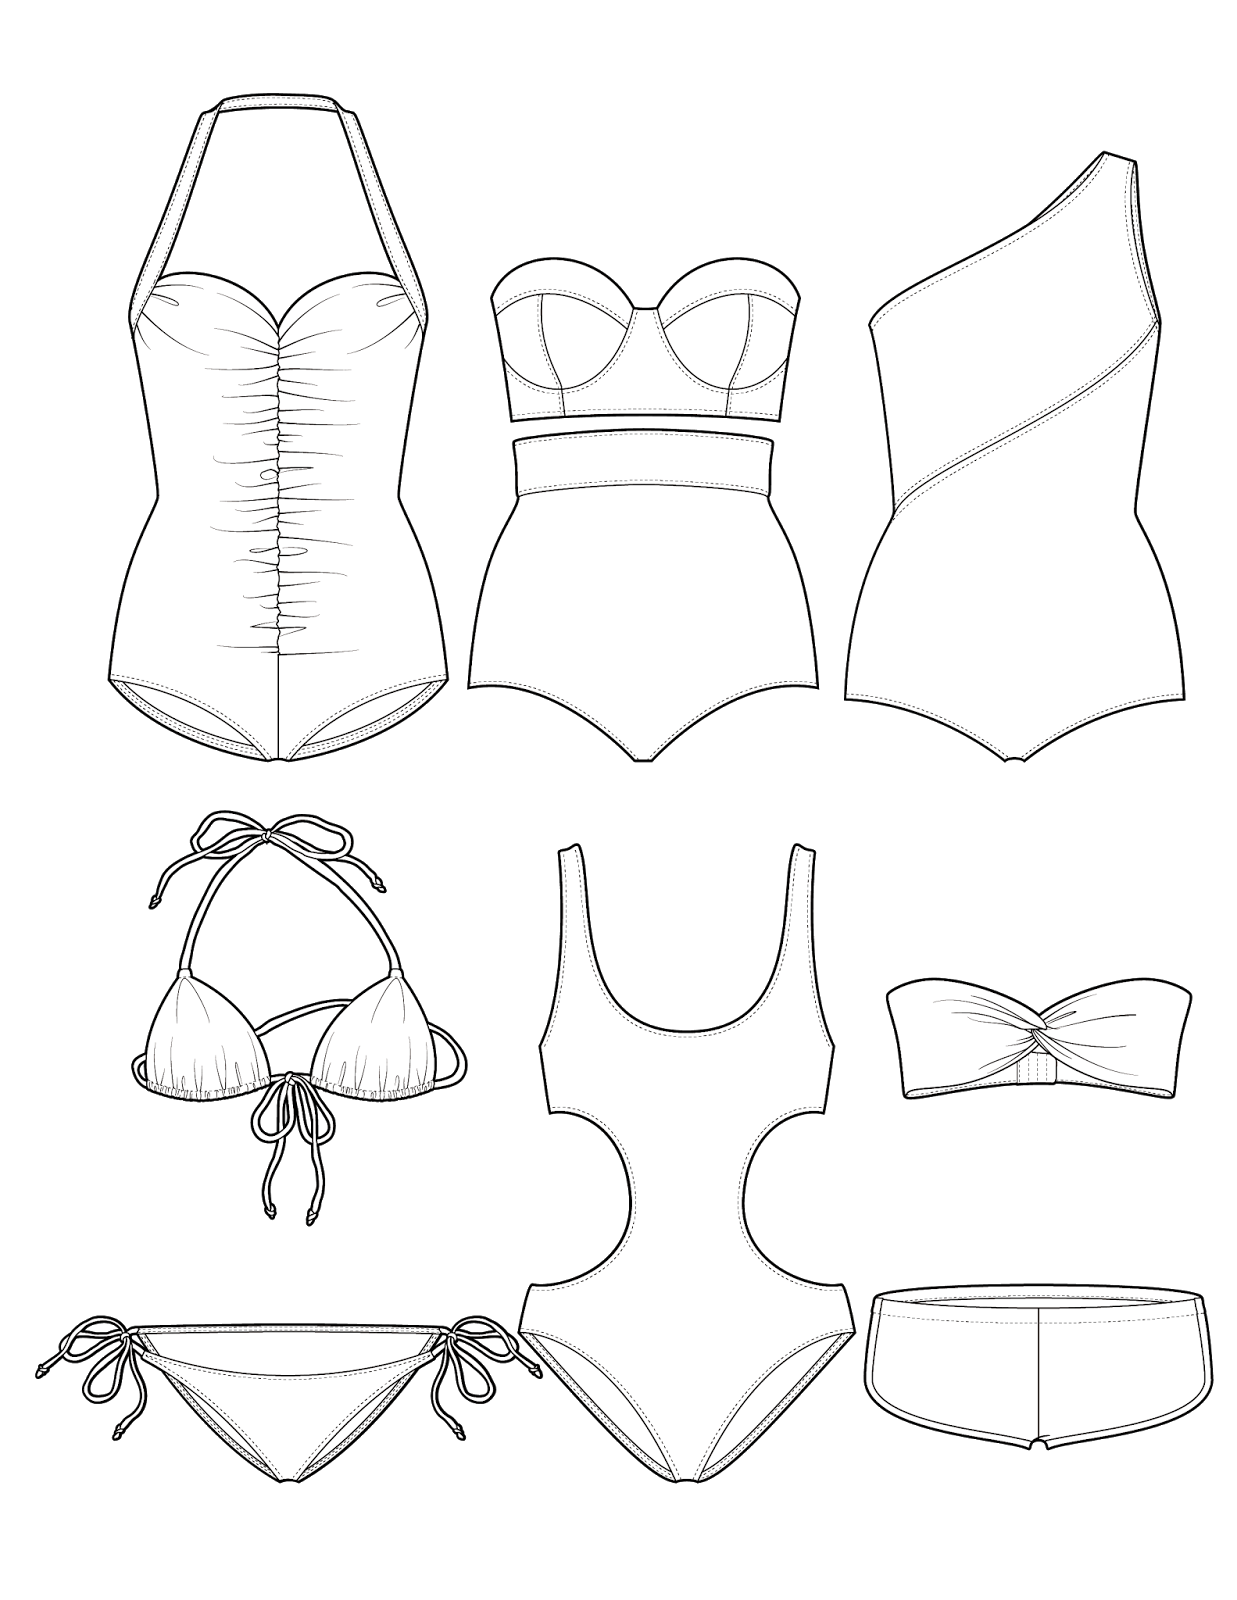 swimwear-coloring-page, fashion-coloring-page, coloring-pages-for-adults